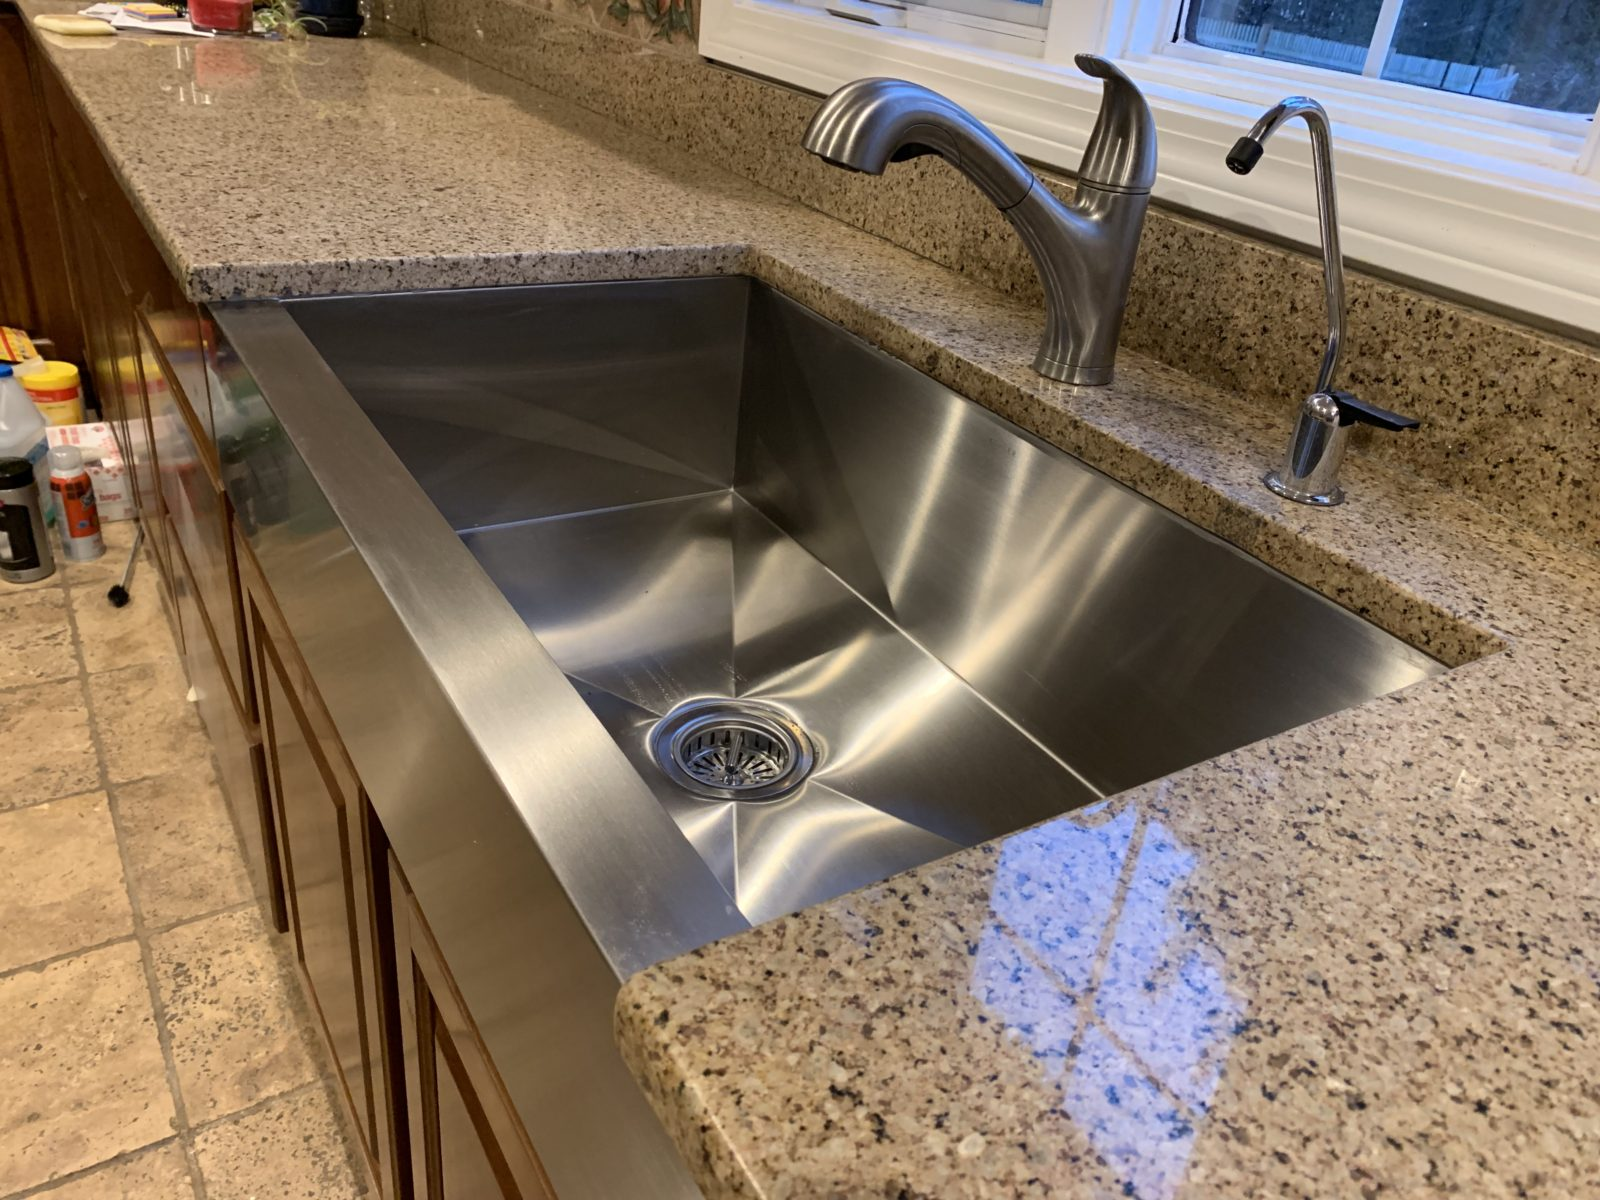 Baird Home Solutions, Farmers Kithen Sink, Kitchen Remodel